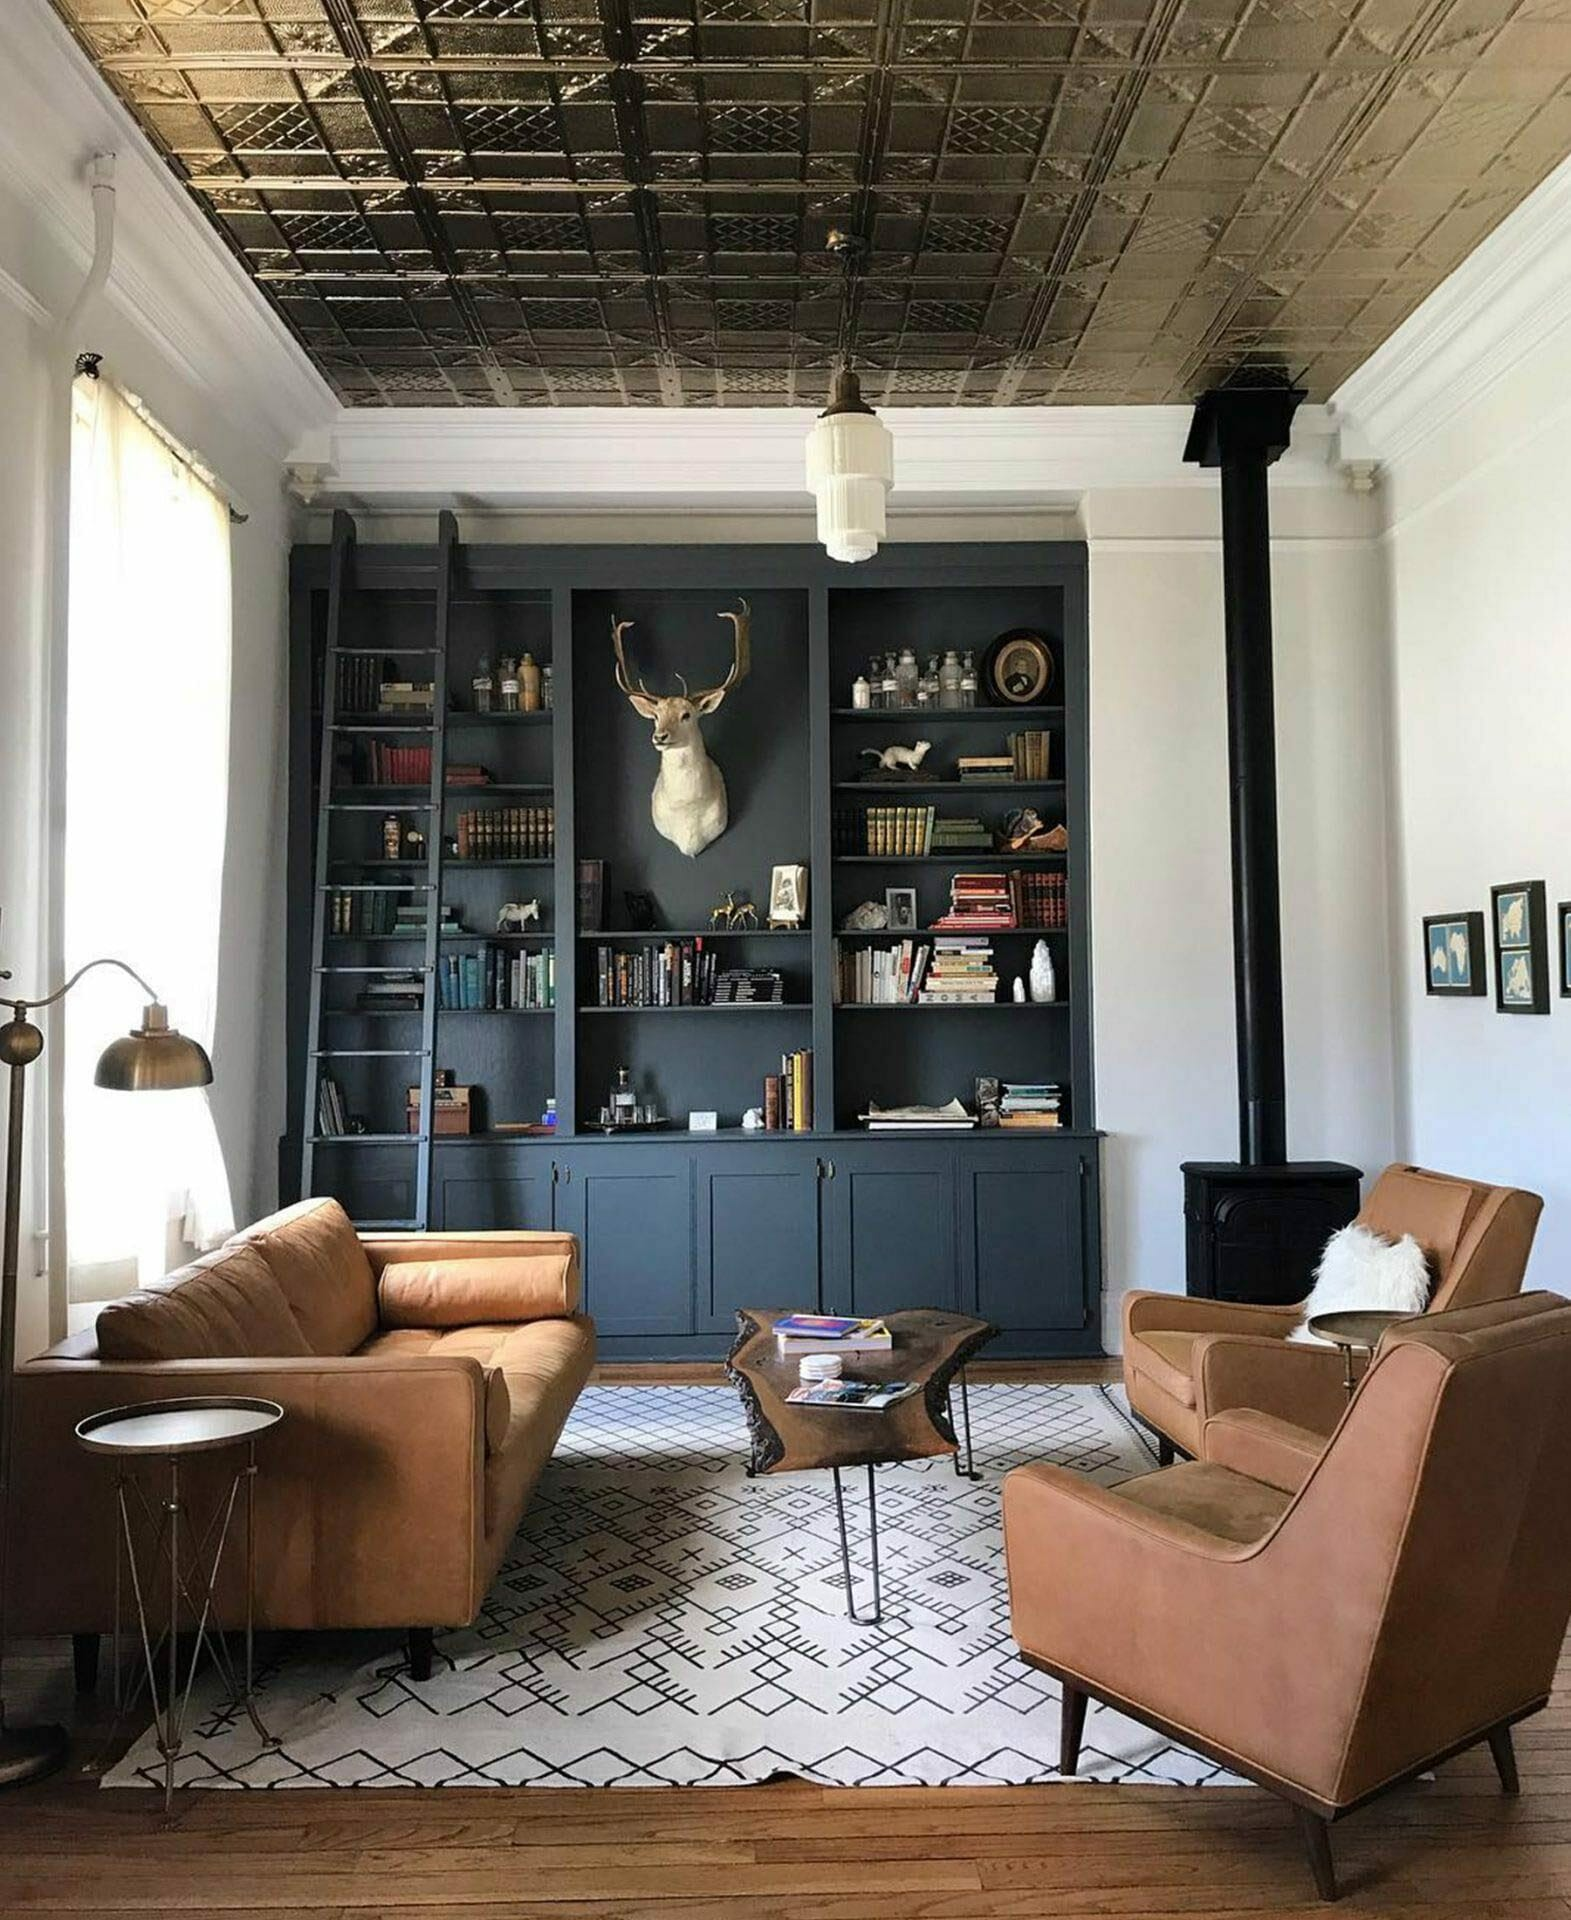 A living room featuring an Article leather sofa and two leather chairs from Dram Apothecary